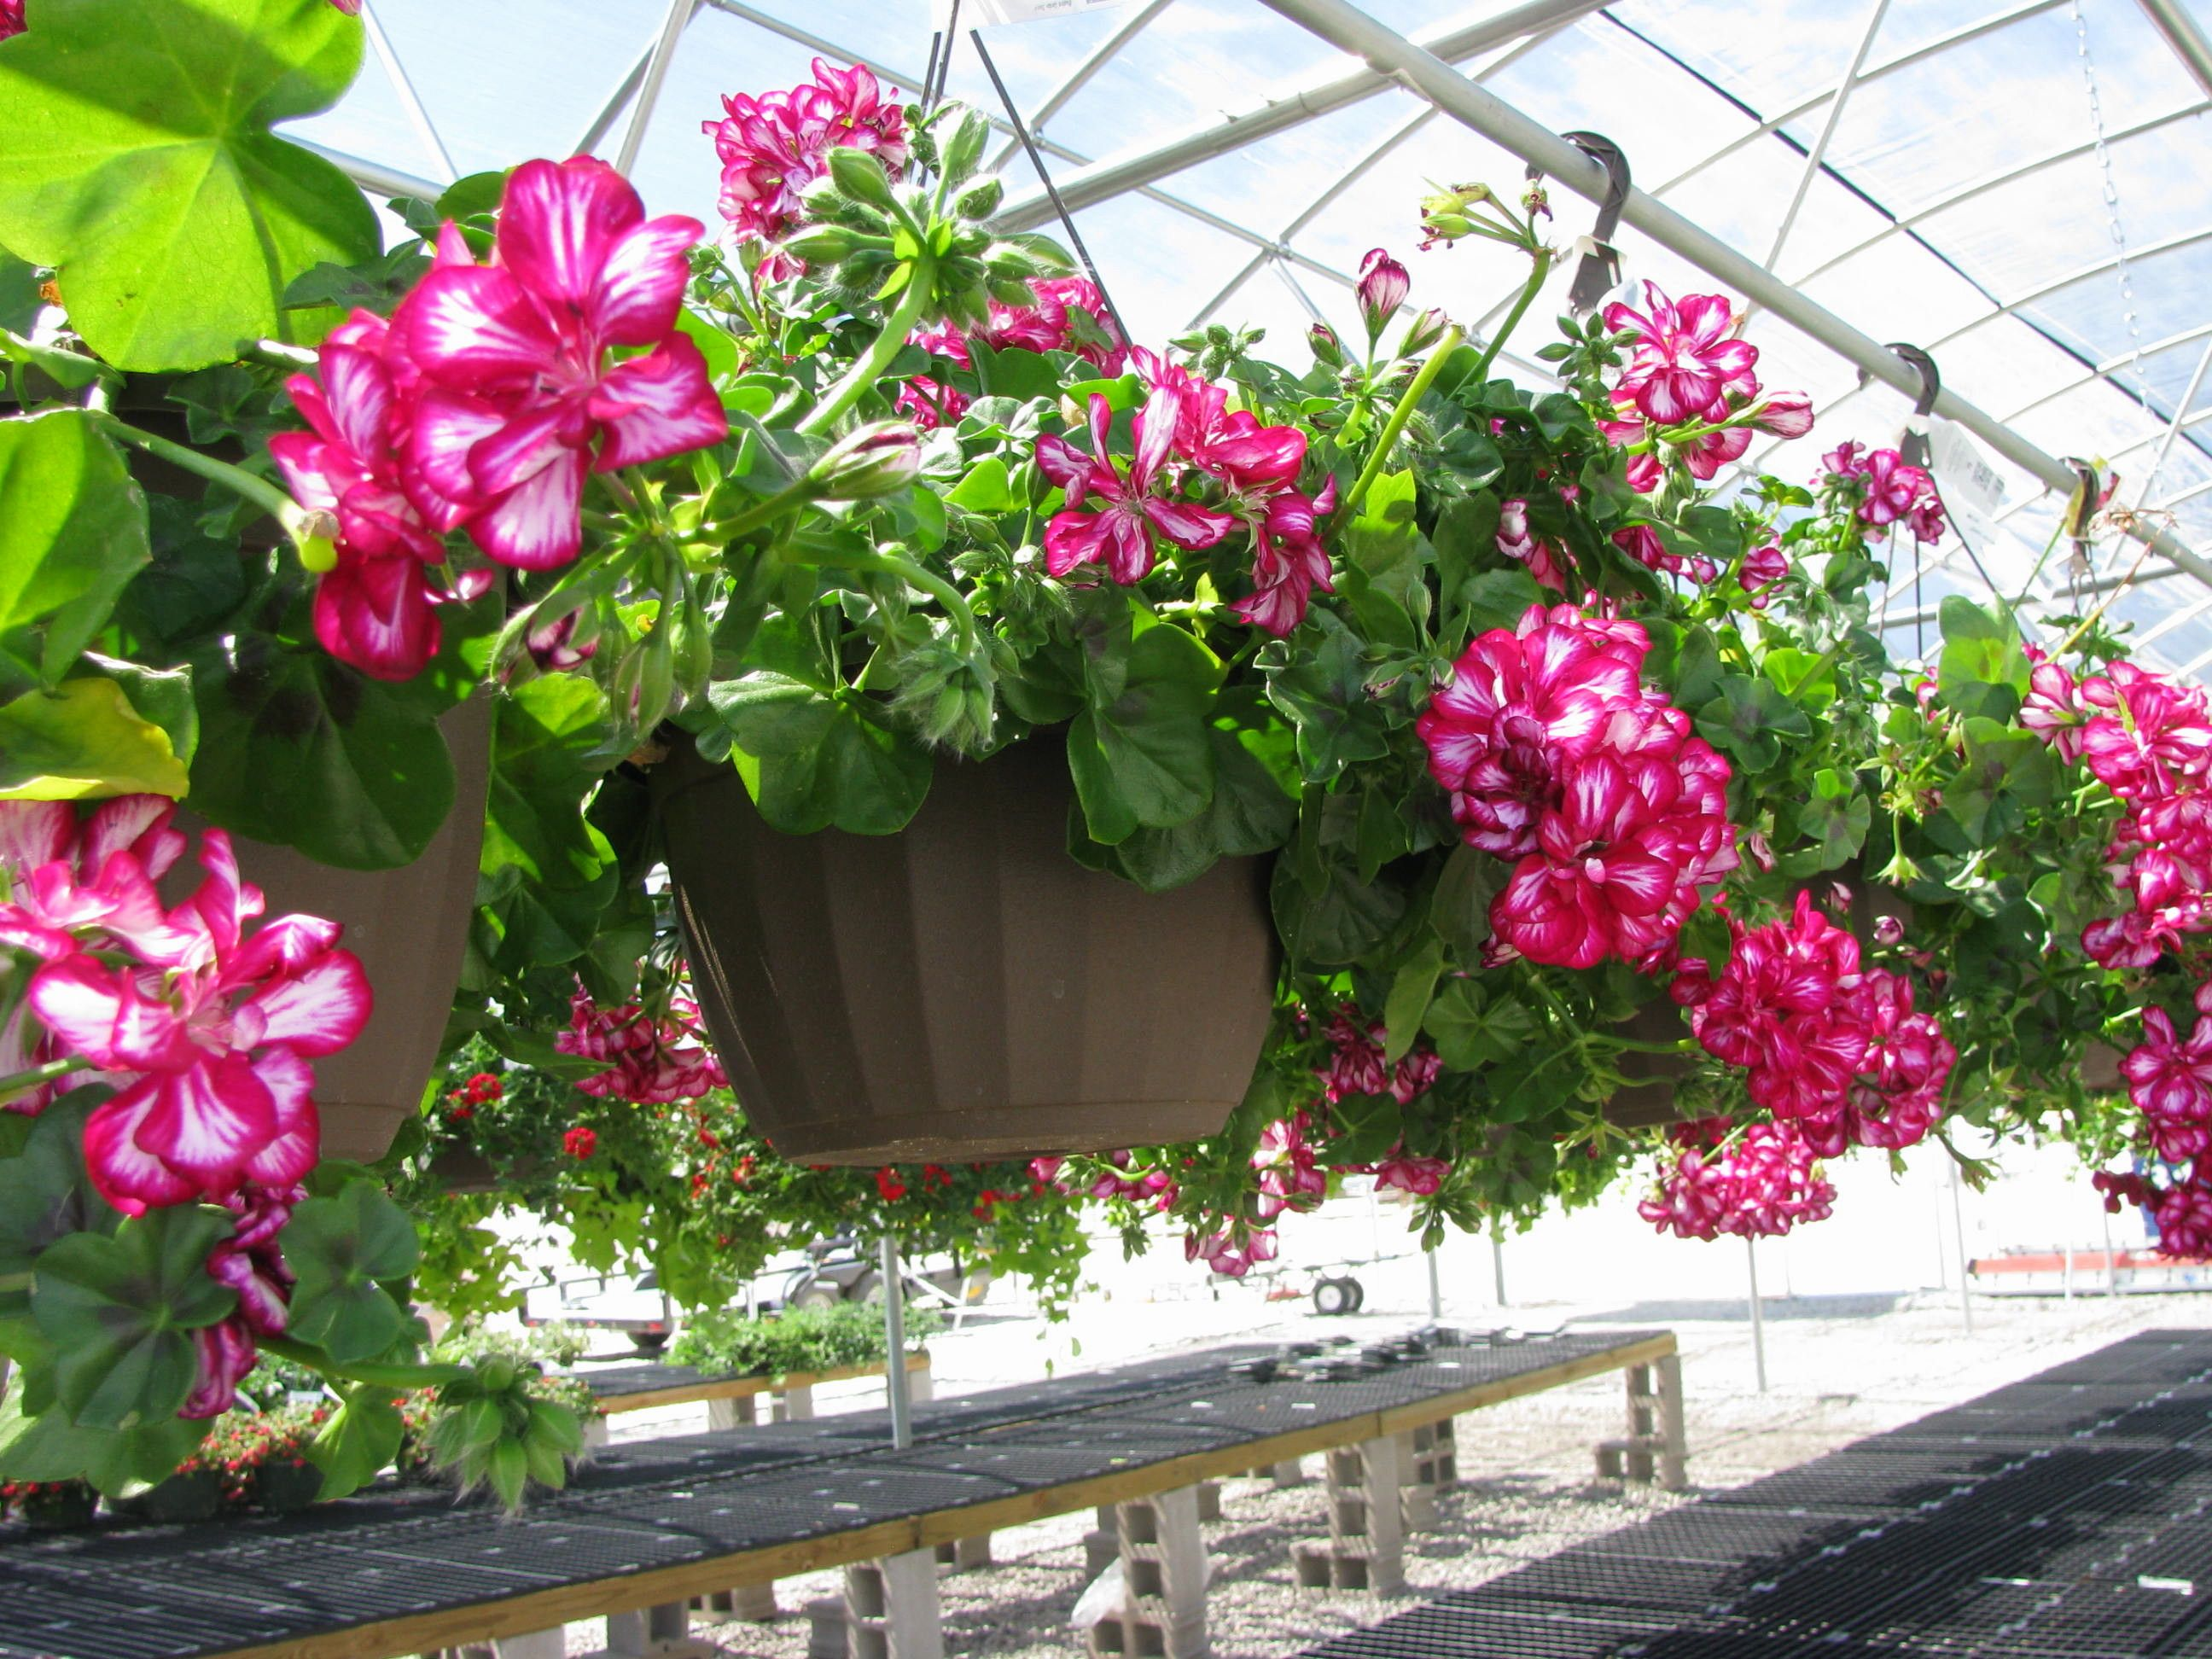 Growing hanging basket flowers from seed : Most beautiful flowers to grow in hanging basket